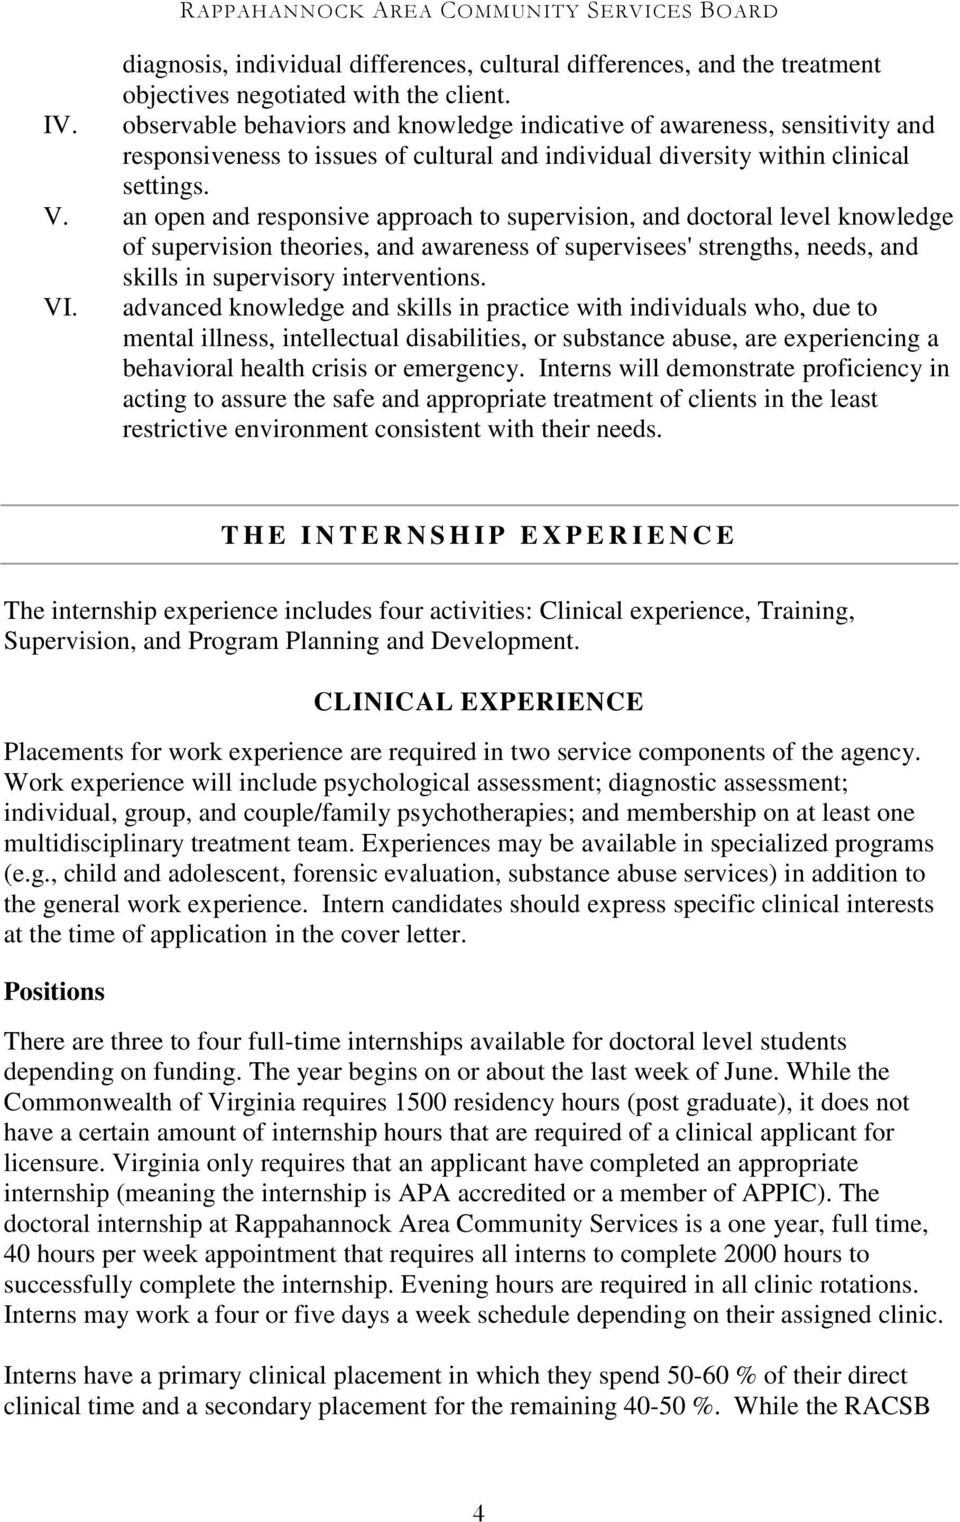 an open and responsive approach to supervision, and doctoral level knowledge of supervision theories, and awareness of supervisees' strengths, needs, and skills in supervisory interventions. VI.